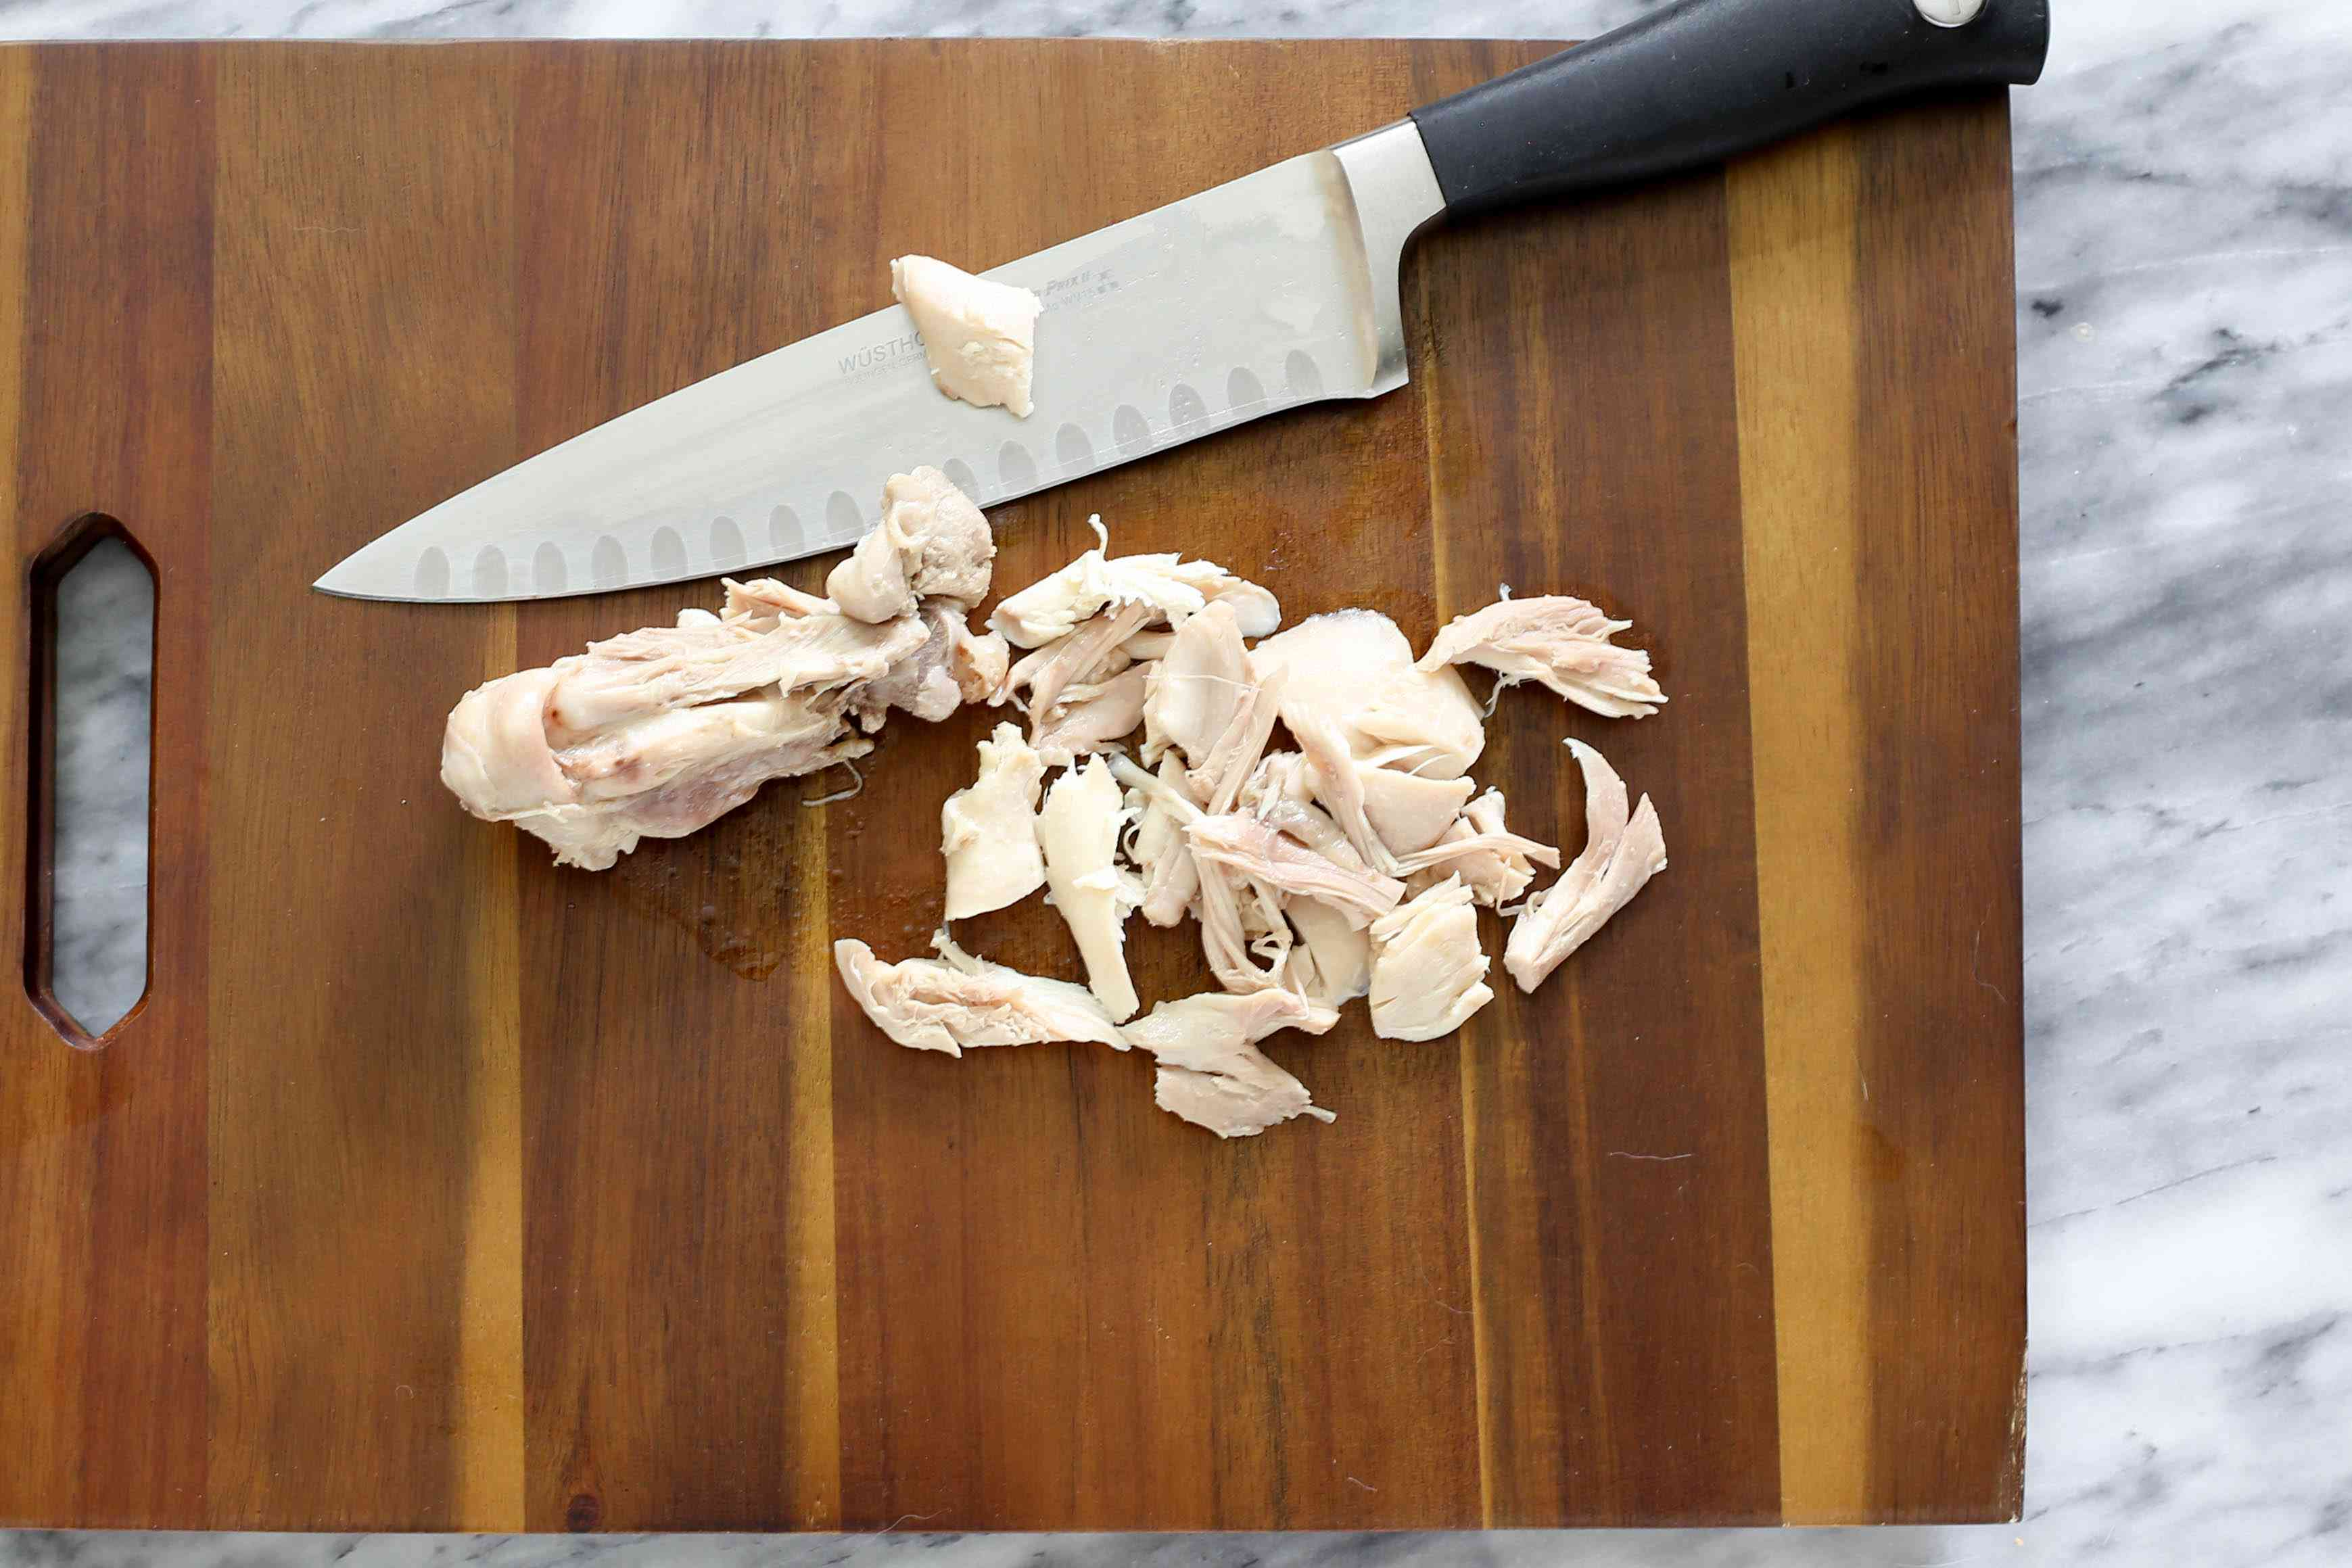 Remove the chicken from the bones and chop.